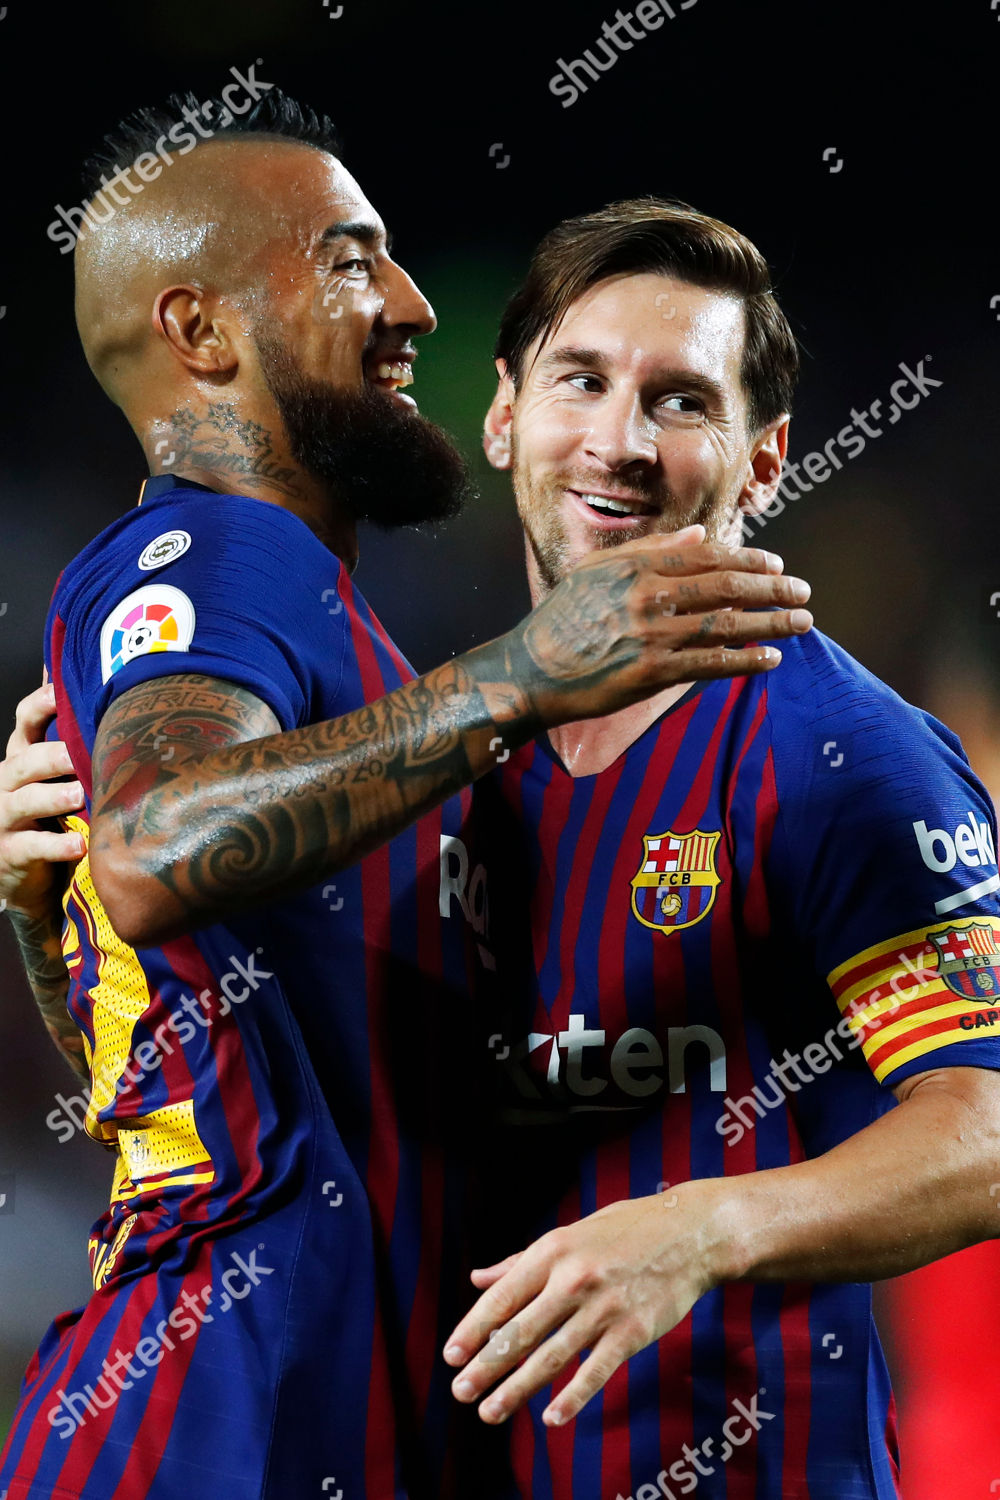 ba367c5b0 Arturo Vidal Lionel Messi Barcelona Editorial Stock Photo - Stock ...